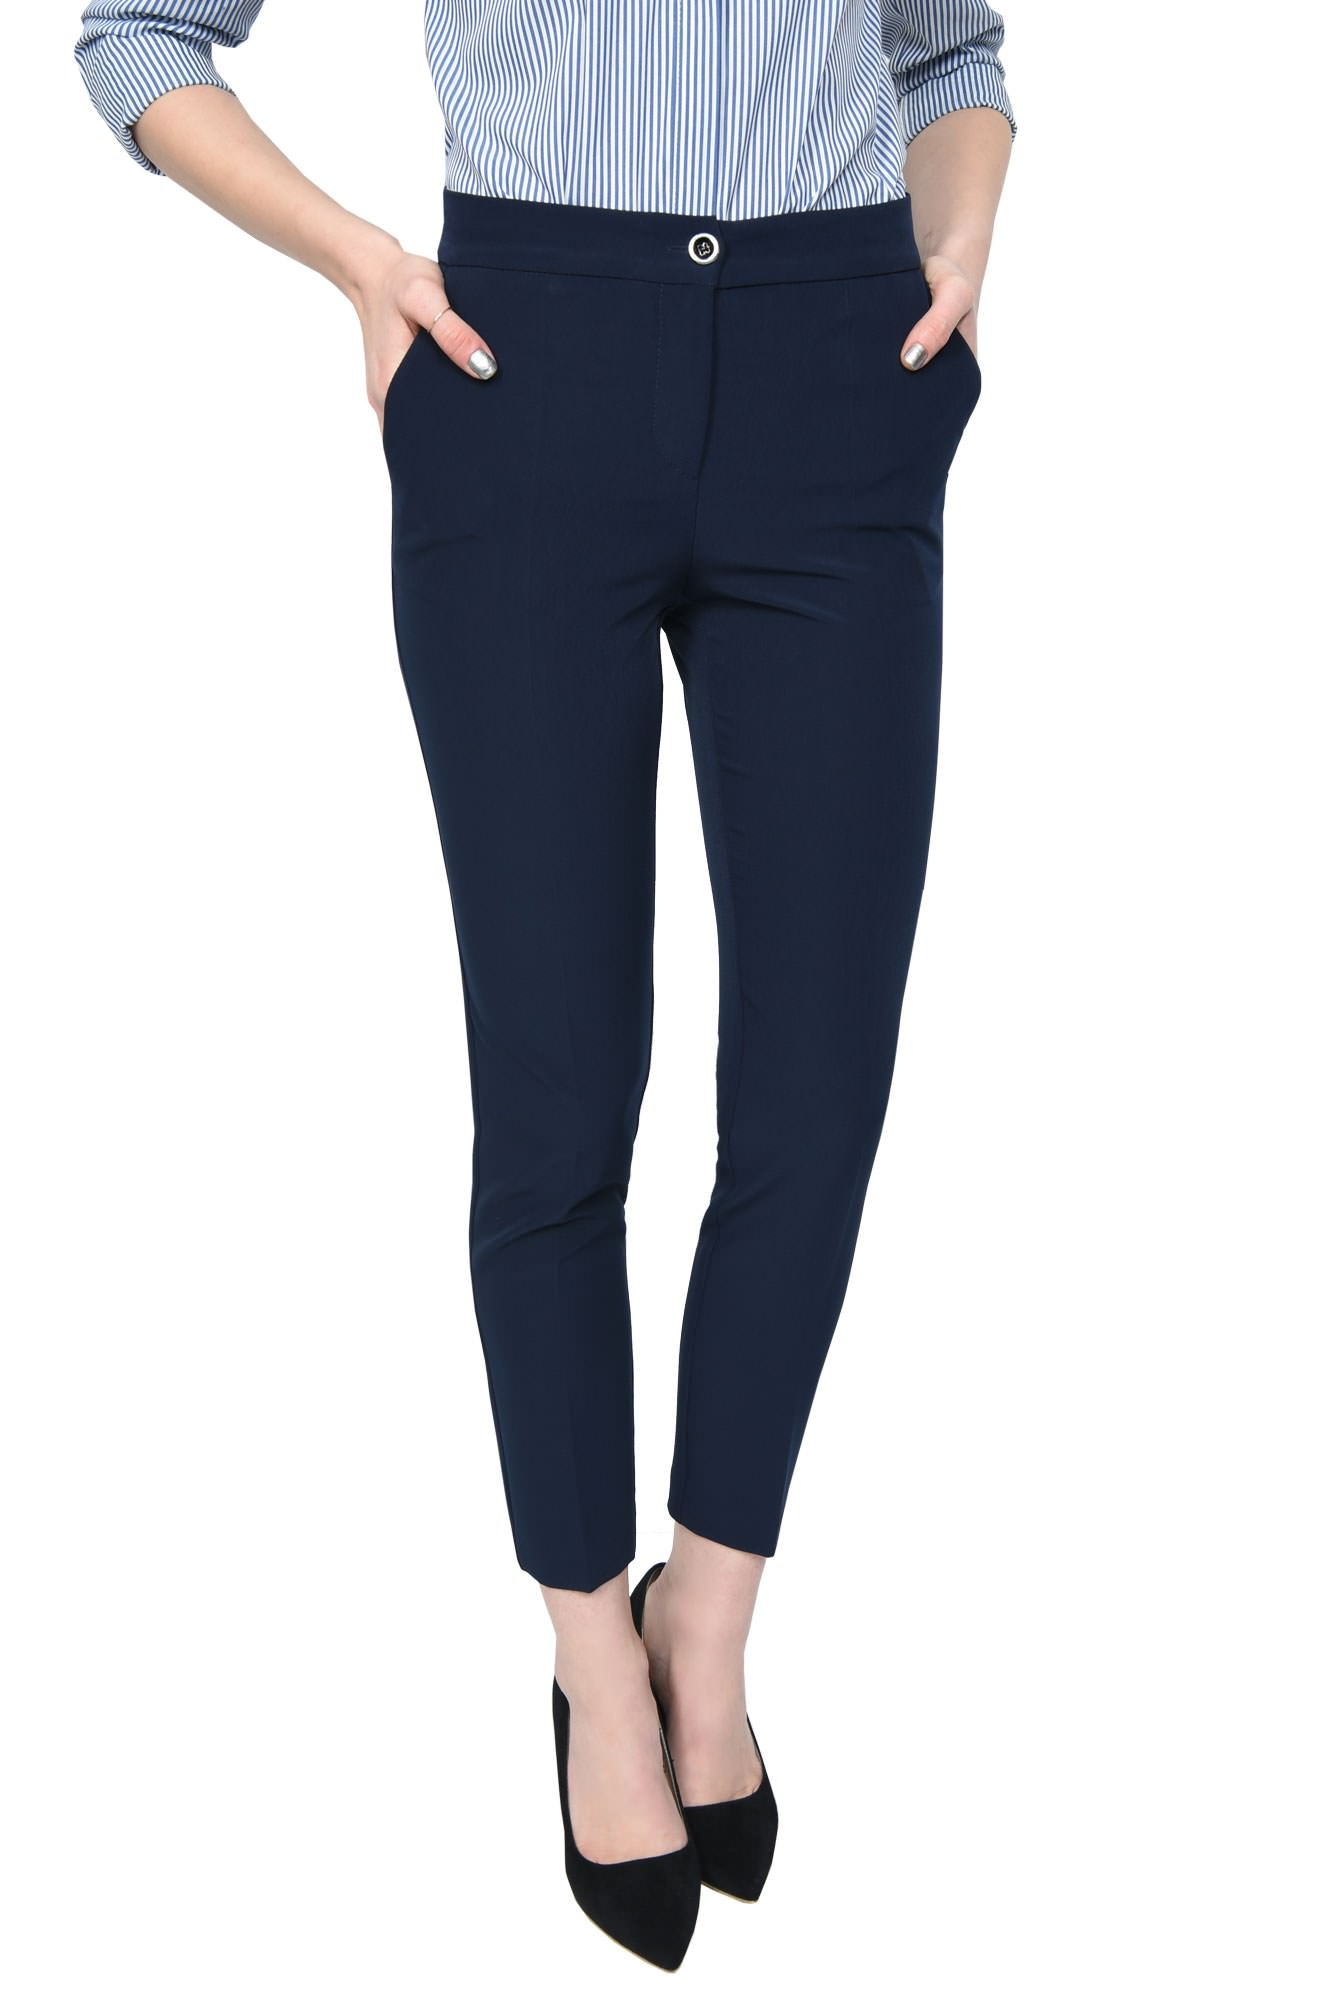 2 - PANTALON OFFICE CONIC PT 133-BLEUMARIN